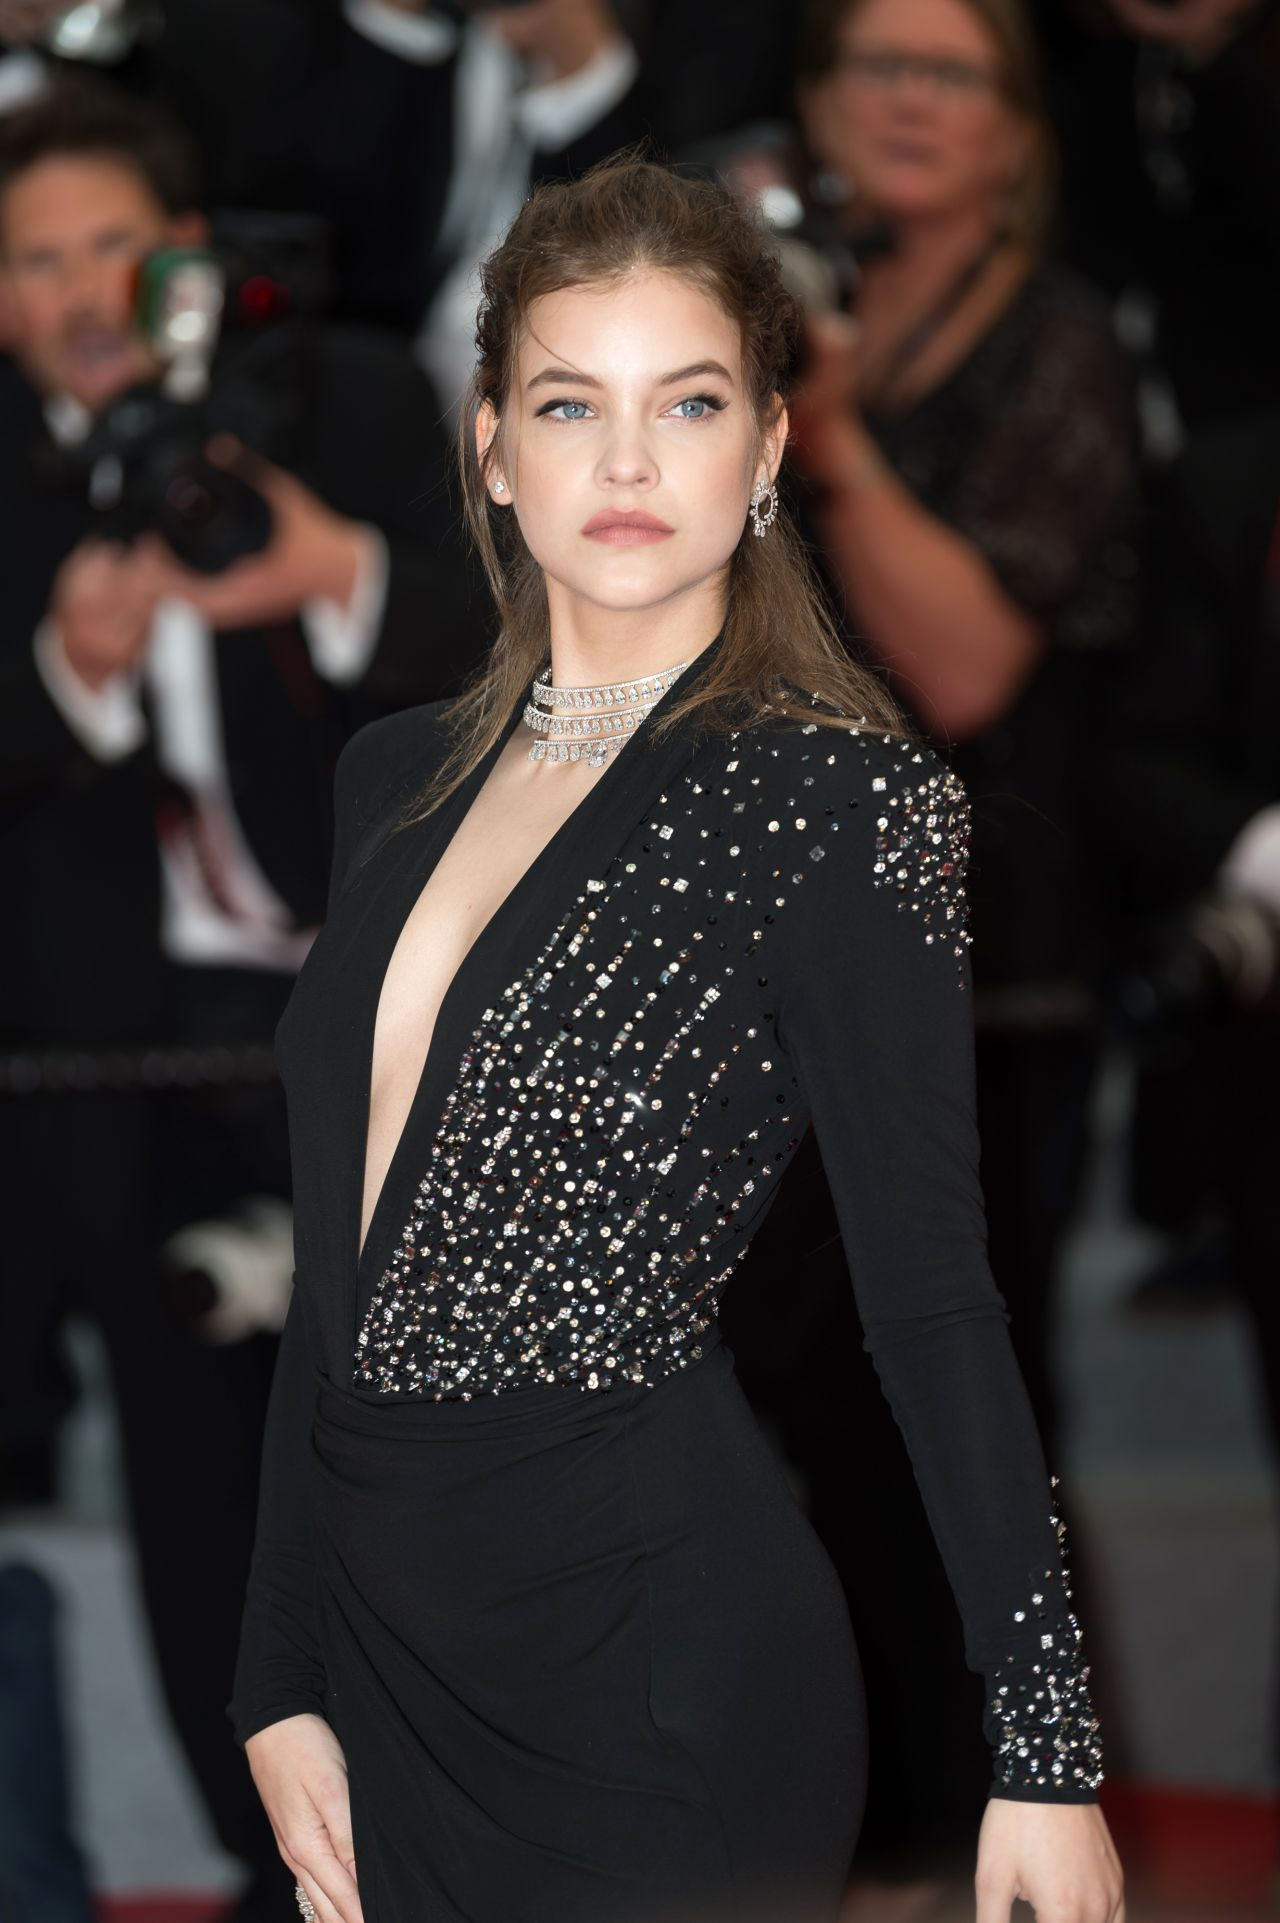 Barbara Palvin Burning Red Carpet In Cannes